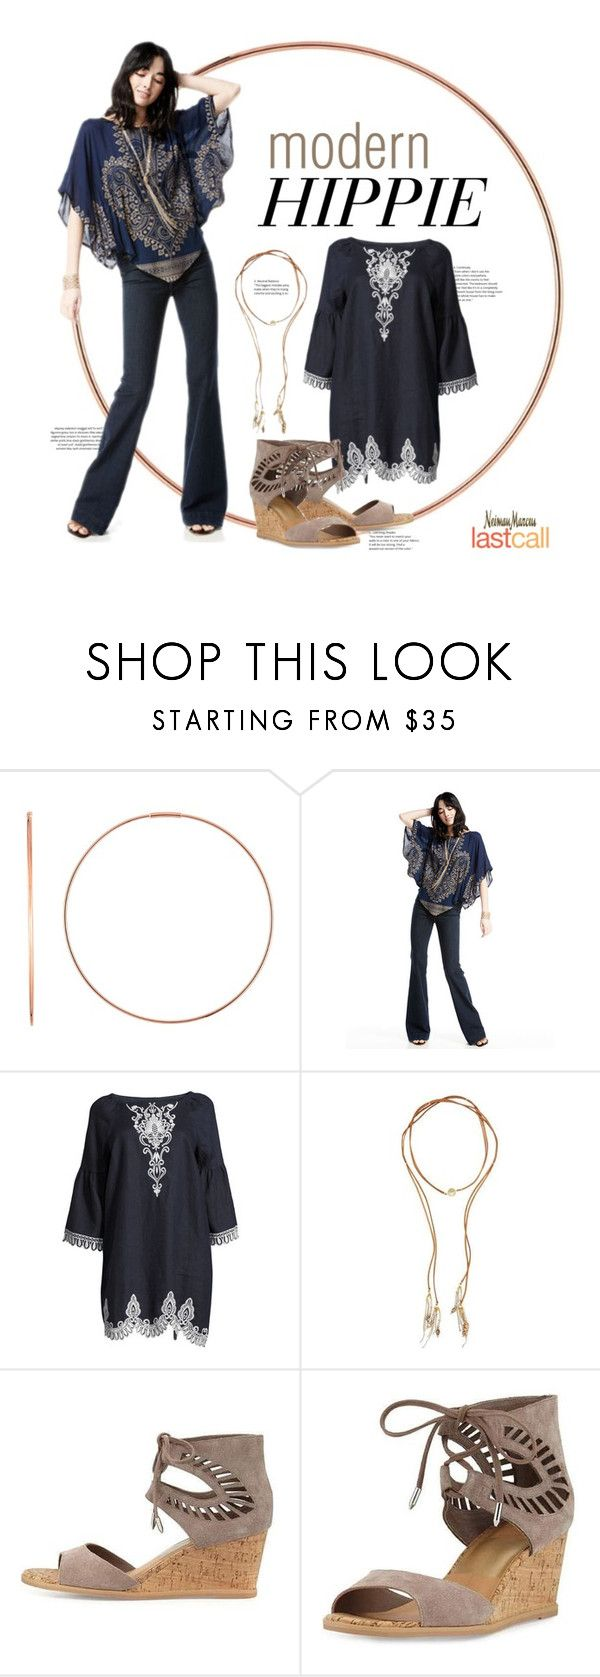 """""""Modern Hippie"""" by lastcall ❤ liked on Polyvore featuring Ginette NY, Raga, Neiman Marcus, NAKAMOL, Dolce Vita, Lydell NYC and modern"""